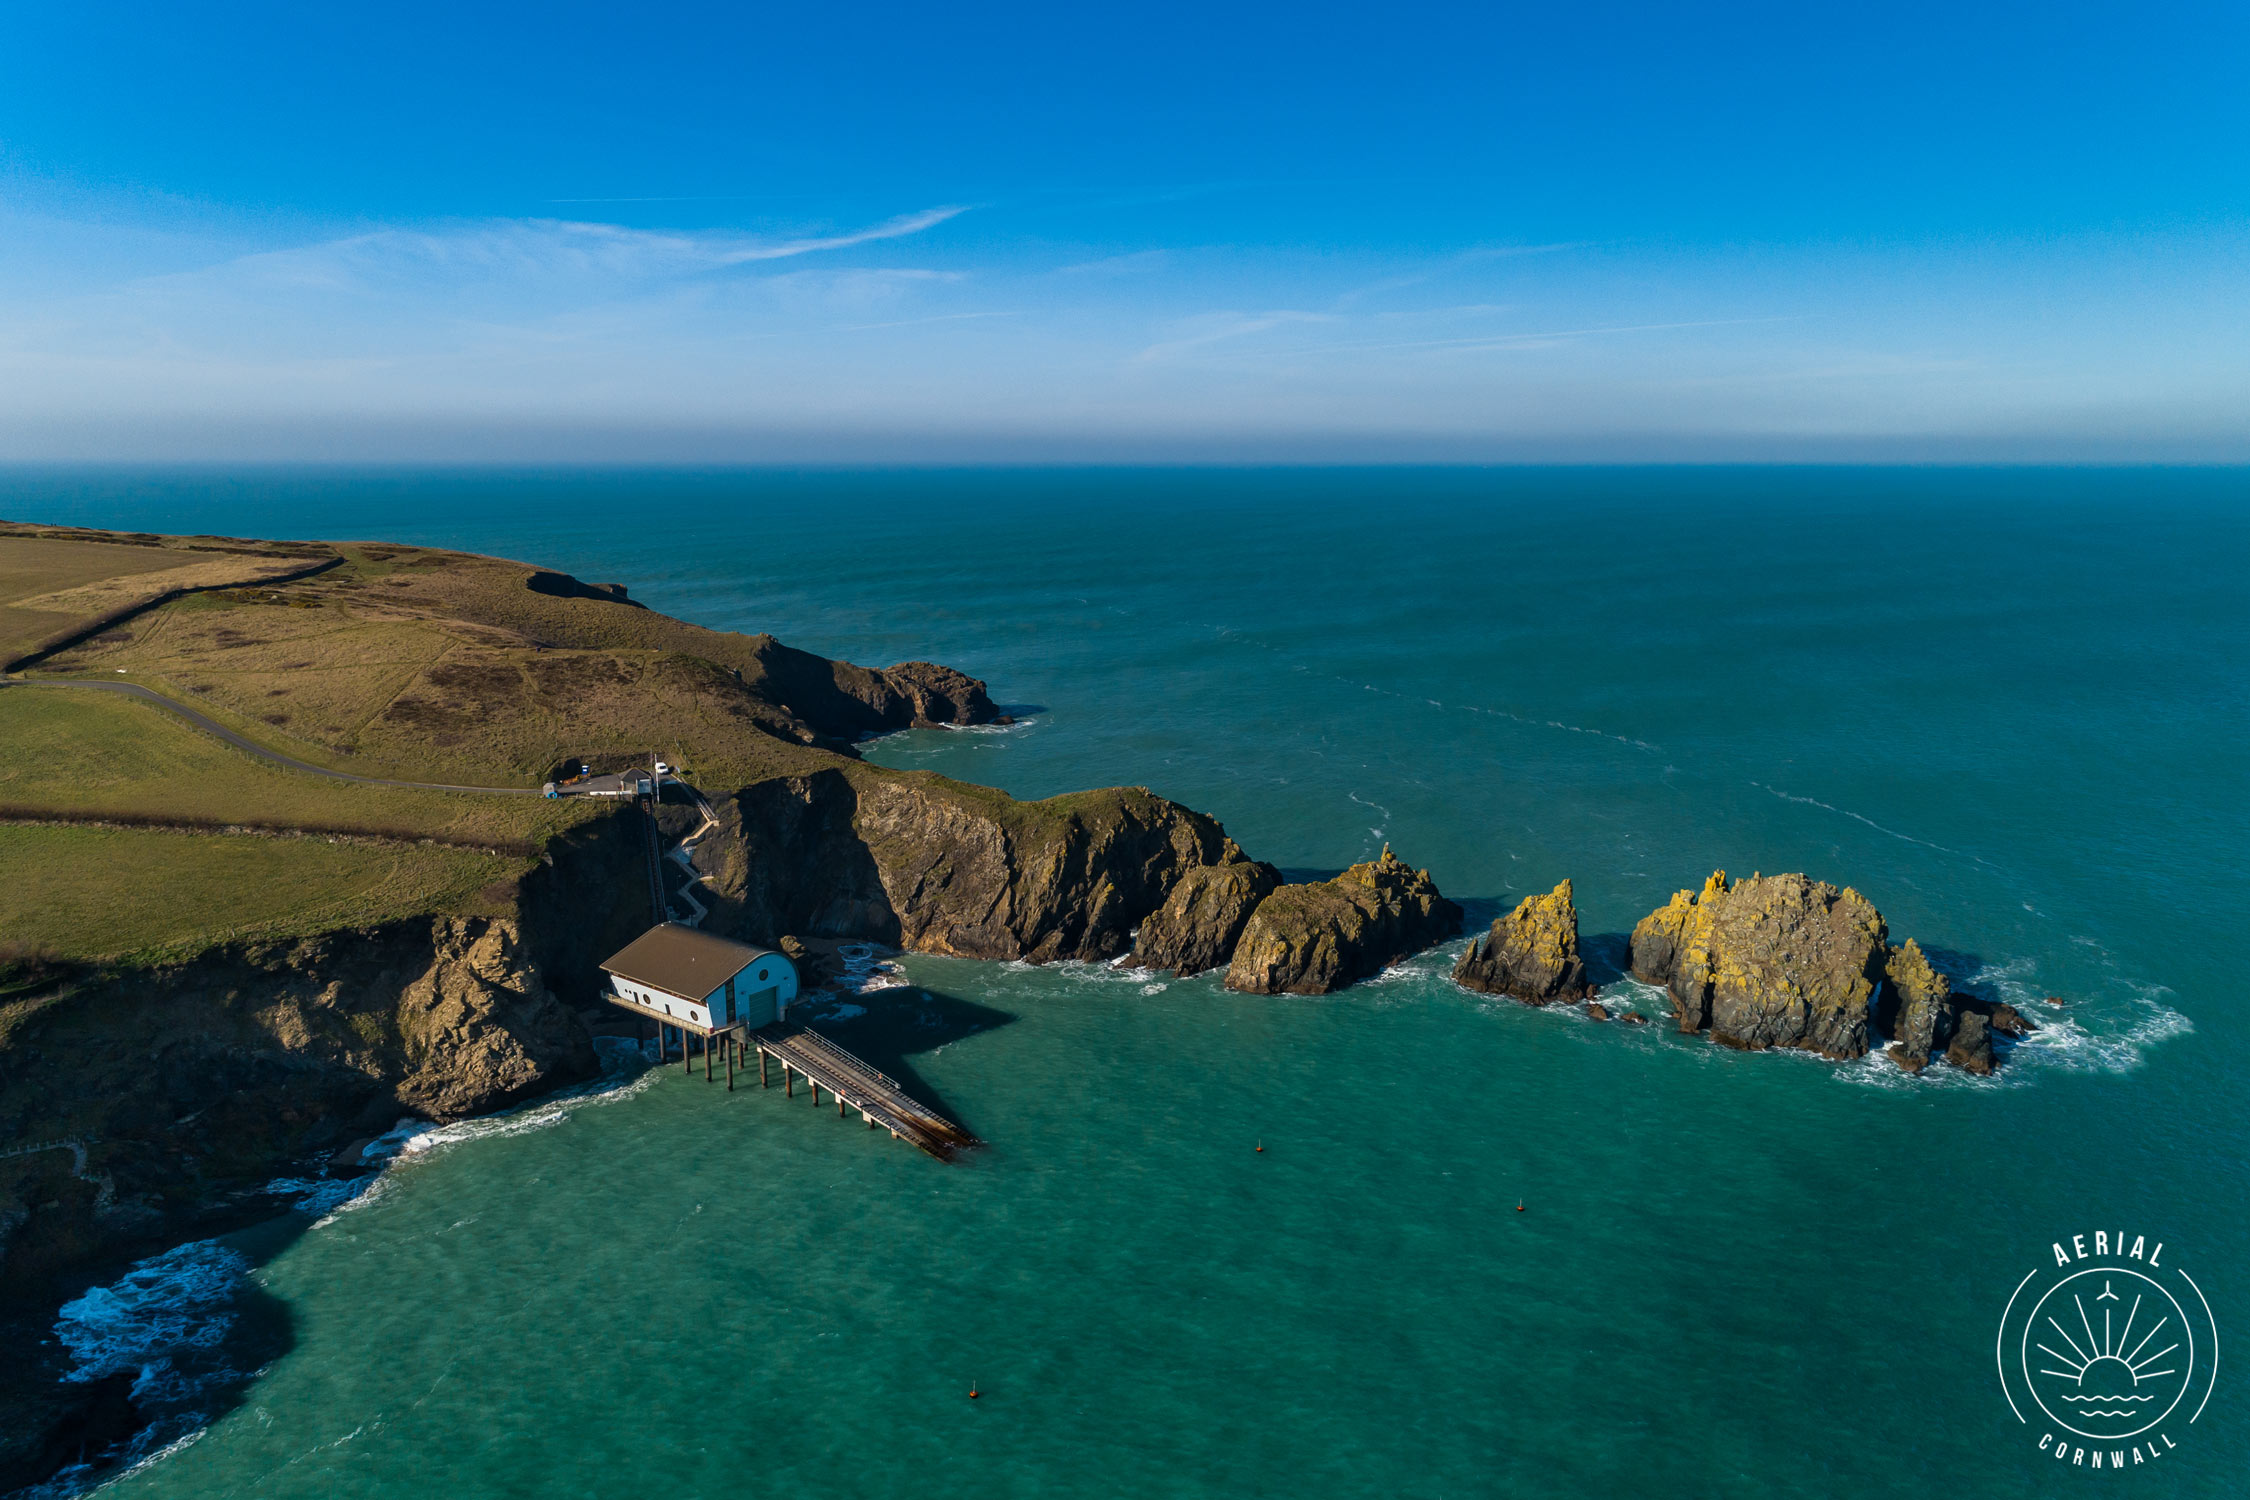 Location: Padstow Lifeboat Station